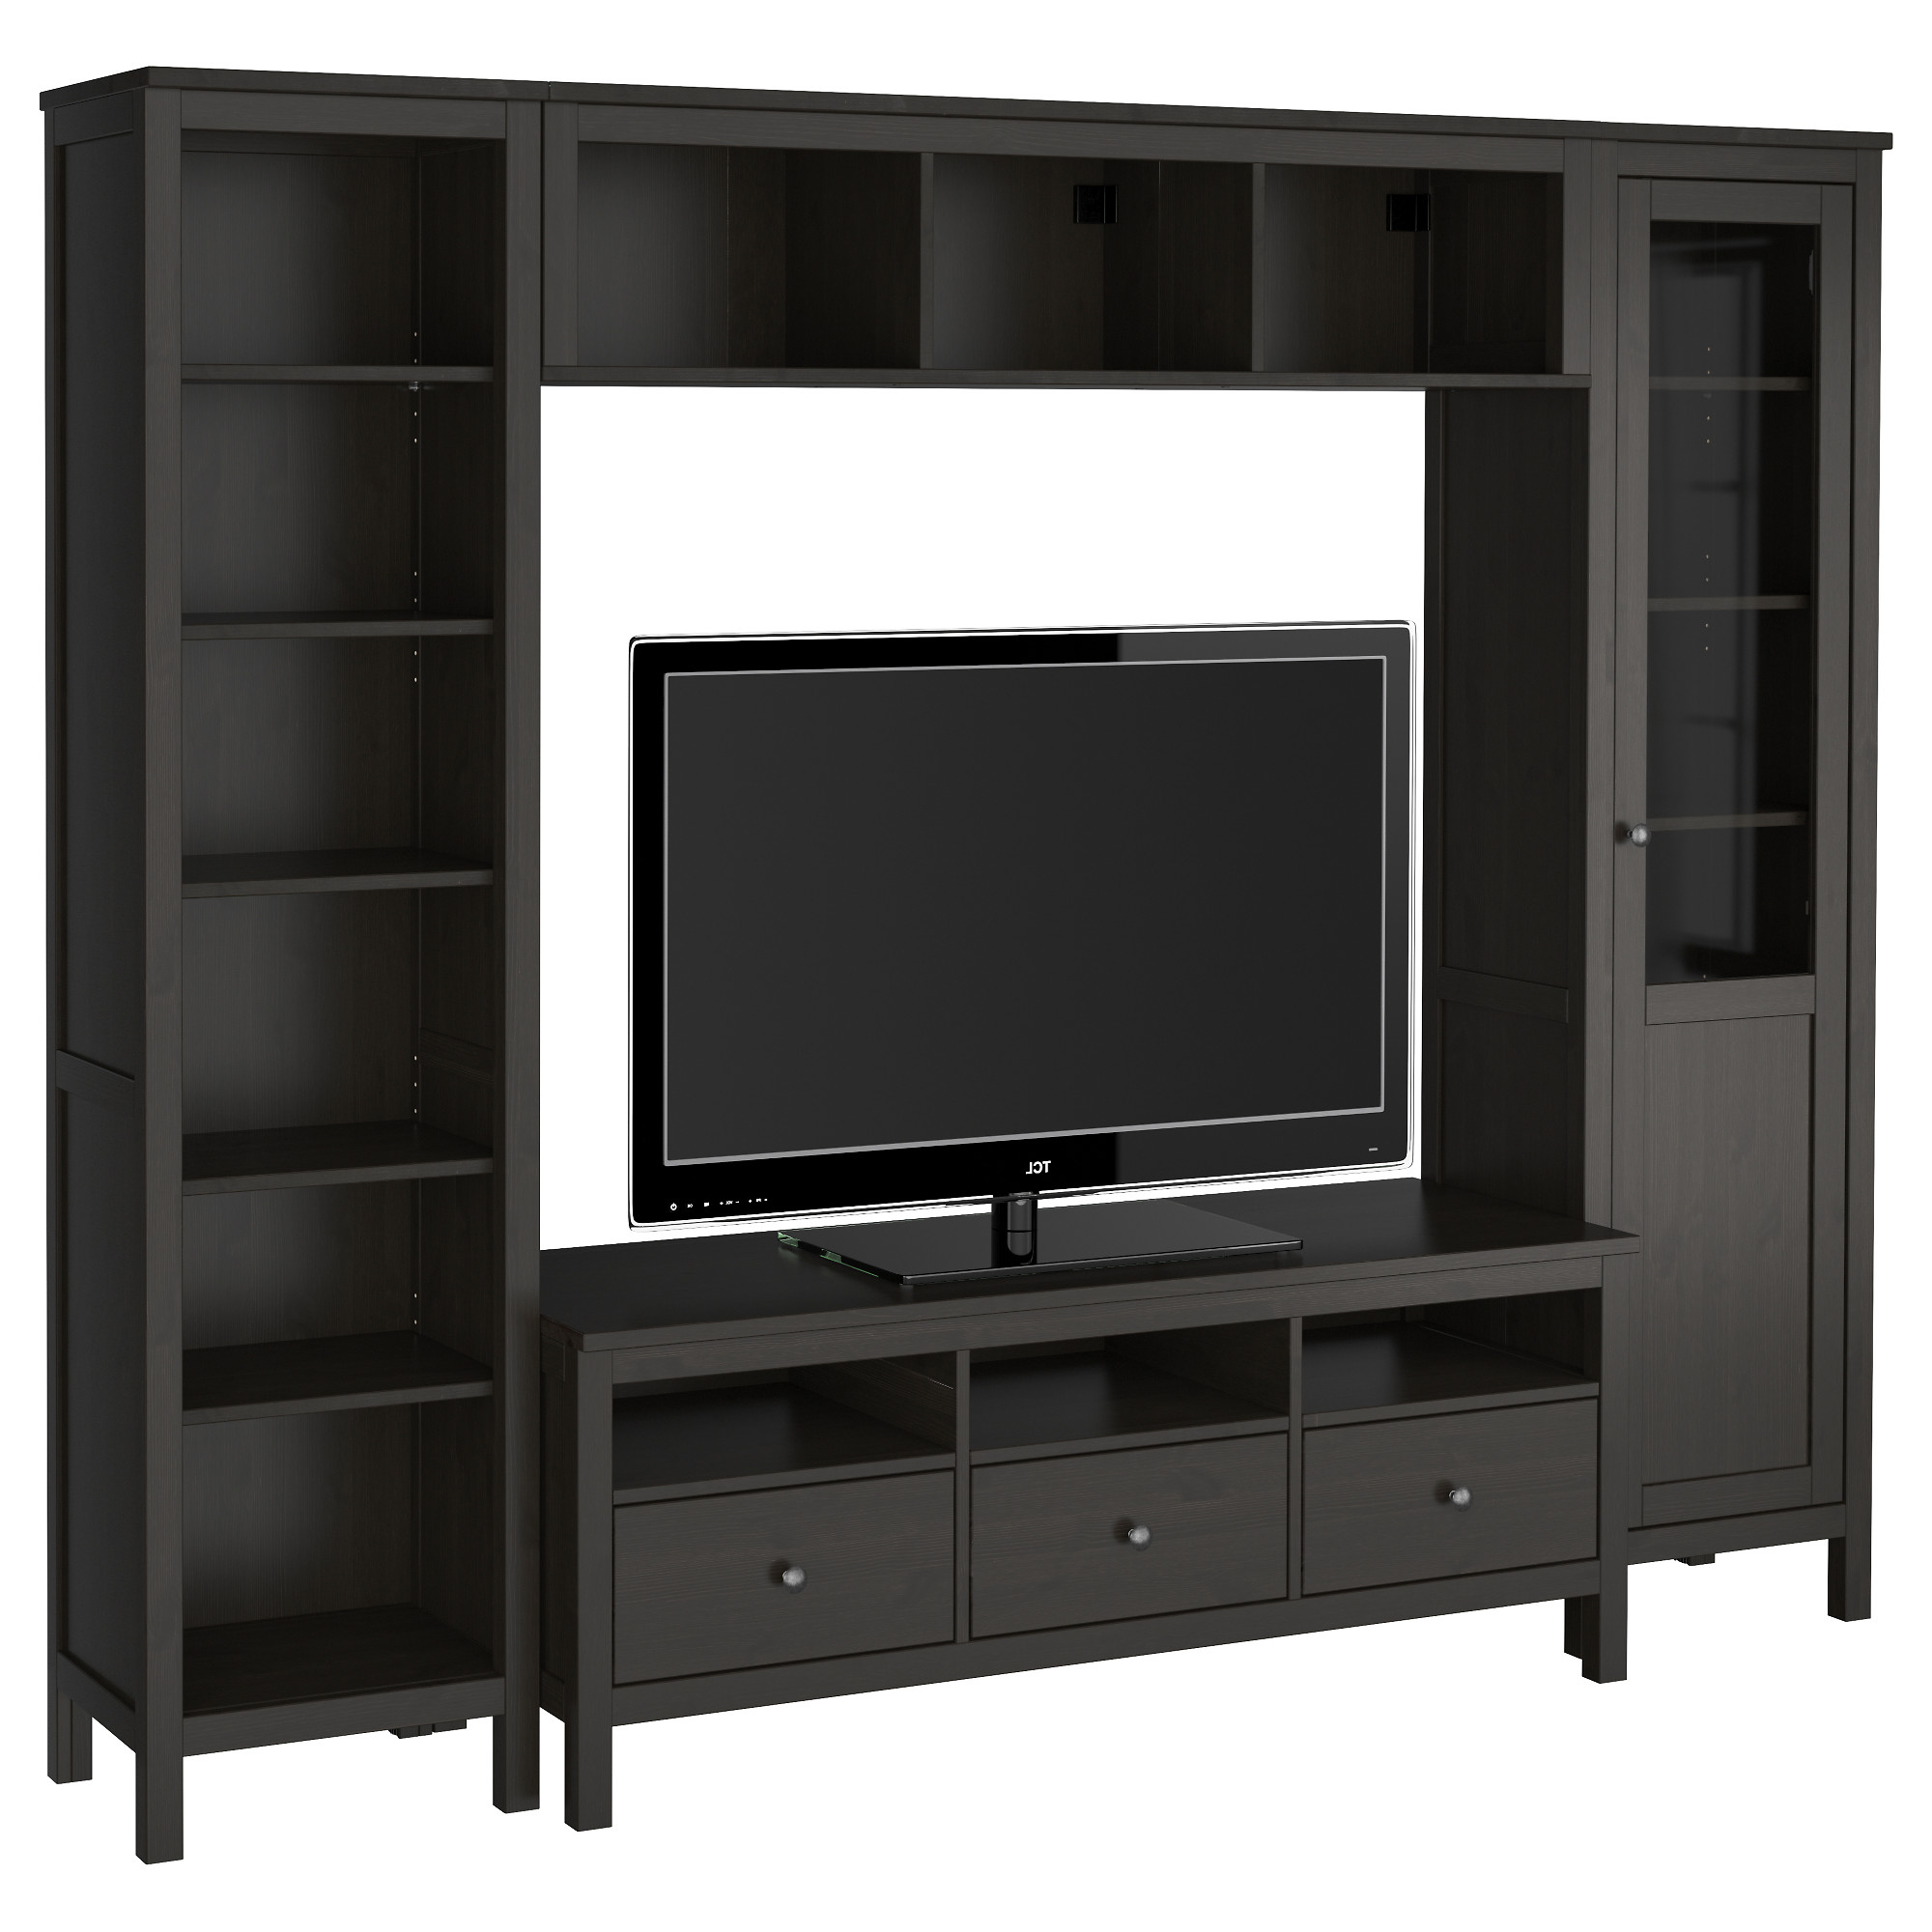 Most Popular Tv Armoire For Flat Screens Ikea 70 Inch Stand 75 With Mount Best In Tv Stands For 70 Flat Screen (Gallery 8 of 20)